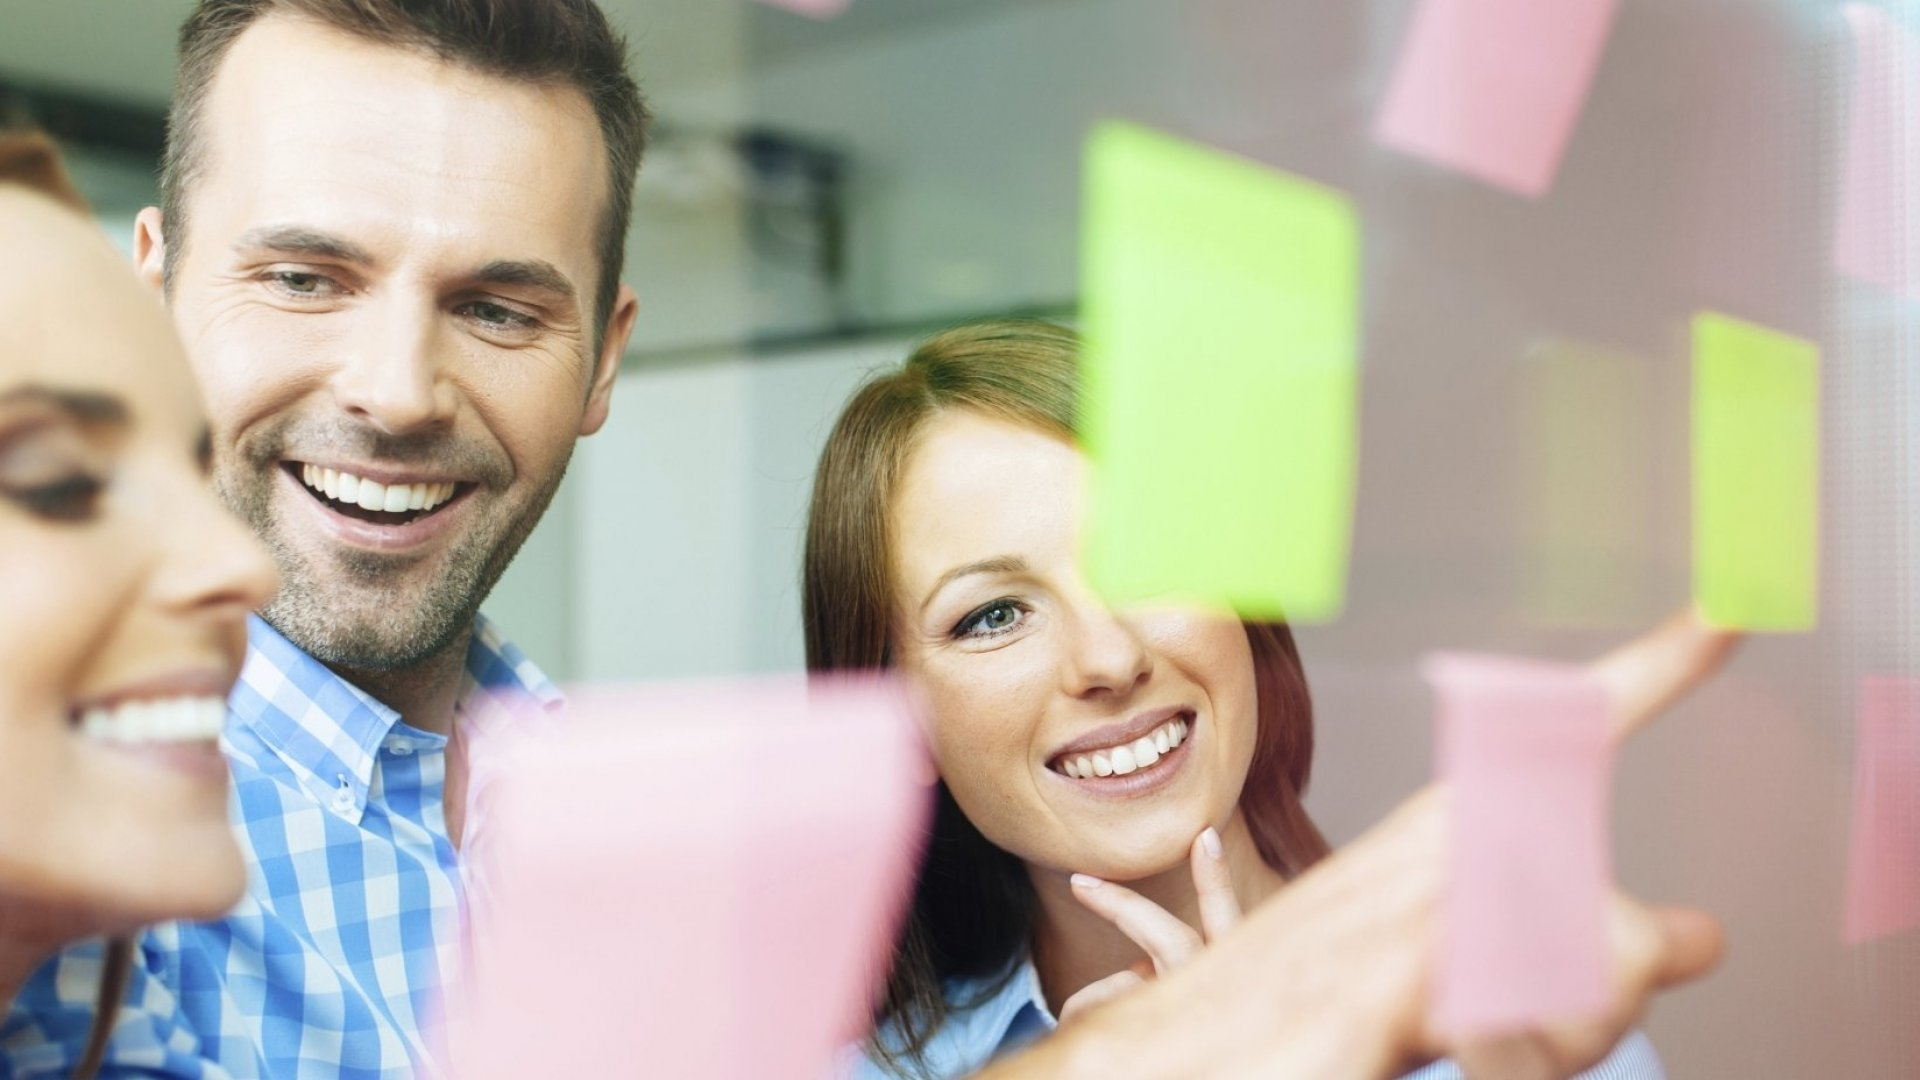 5 Remarkably Simple Steps to Inspire and Engage Your Employees